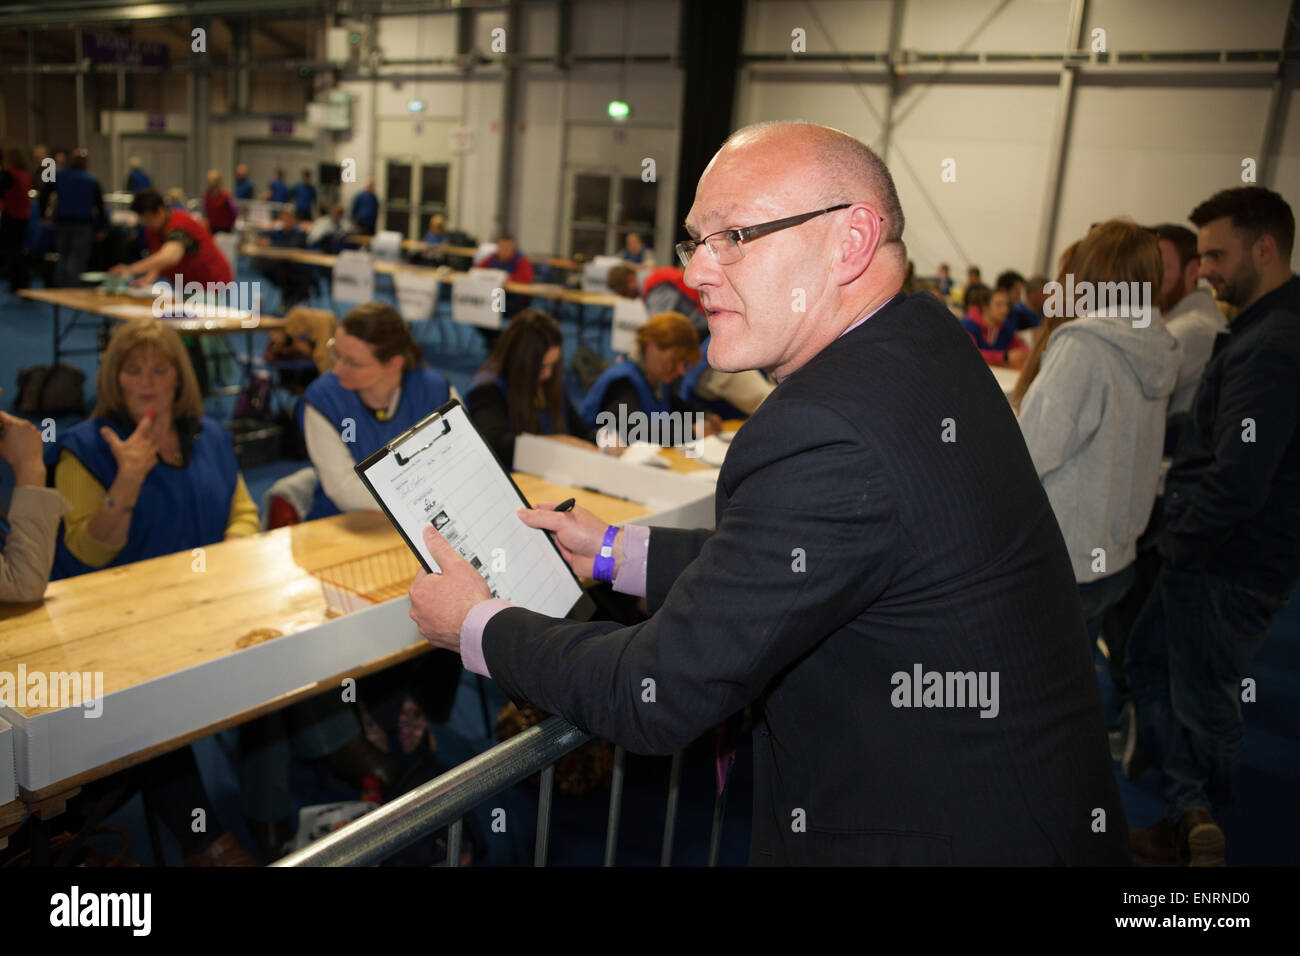 Belfast UK. 7th May 2015 General Election: Paul Maskey from Sinn Fein observes the count for the Constituency of - Stock Image